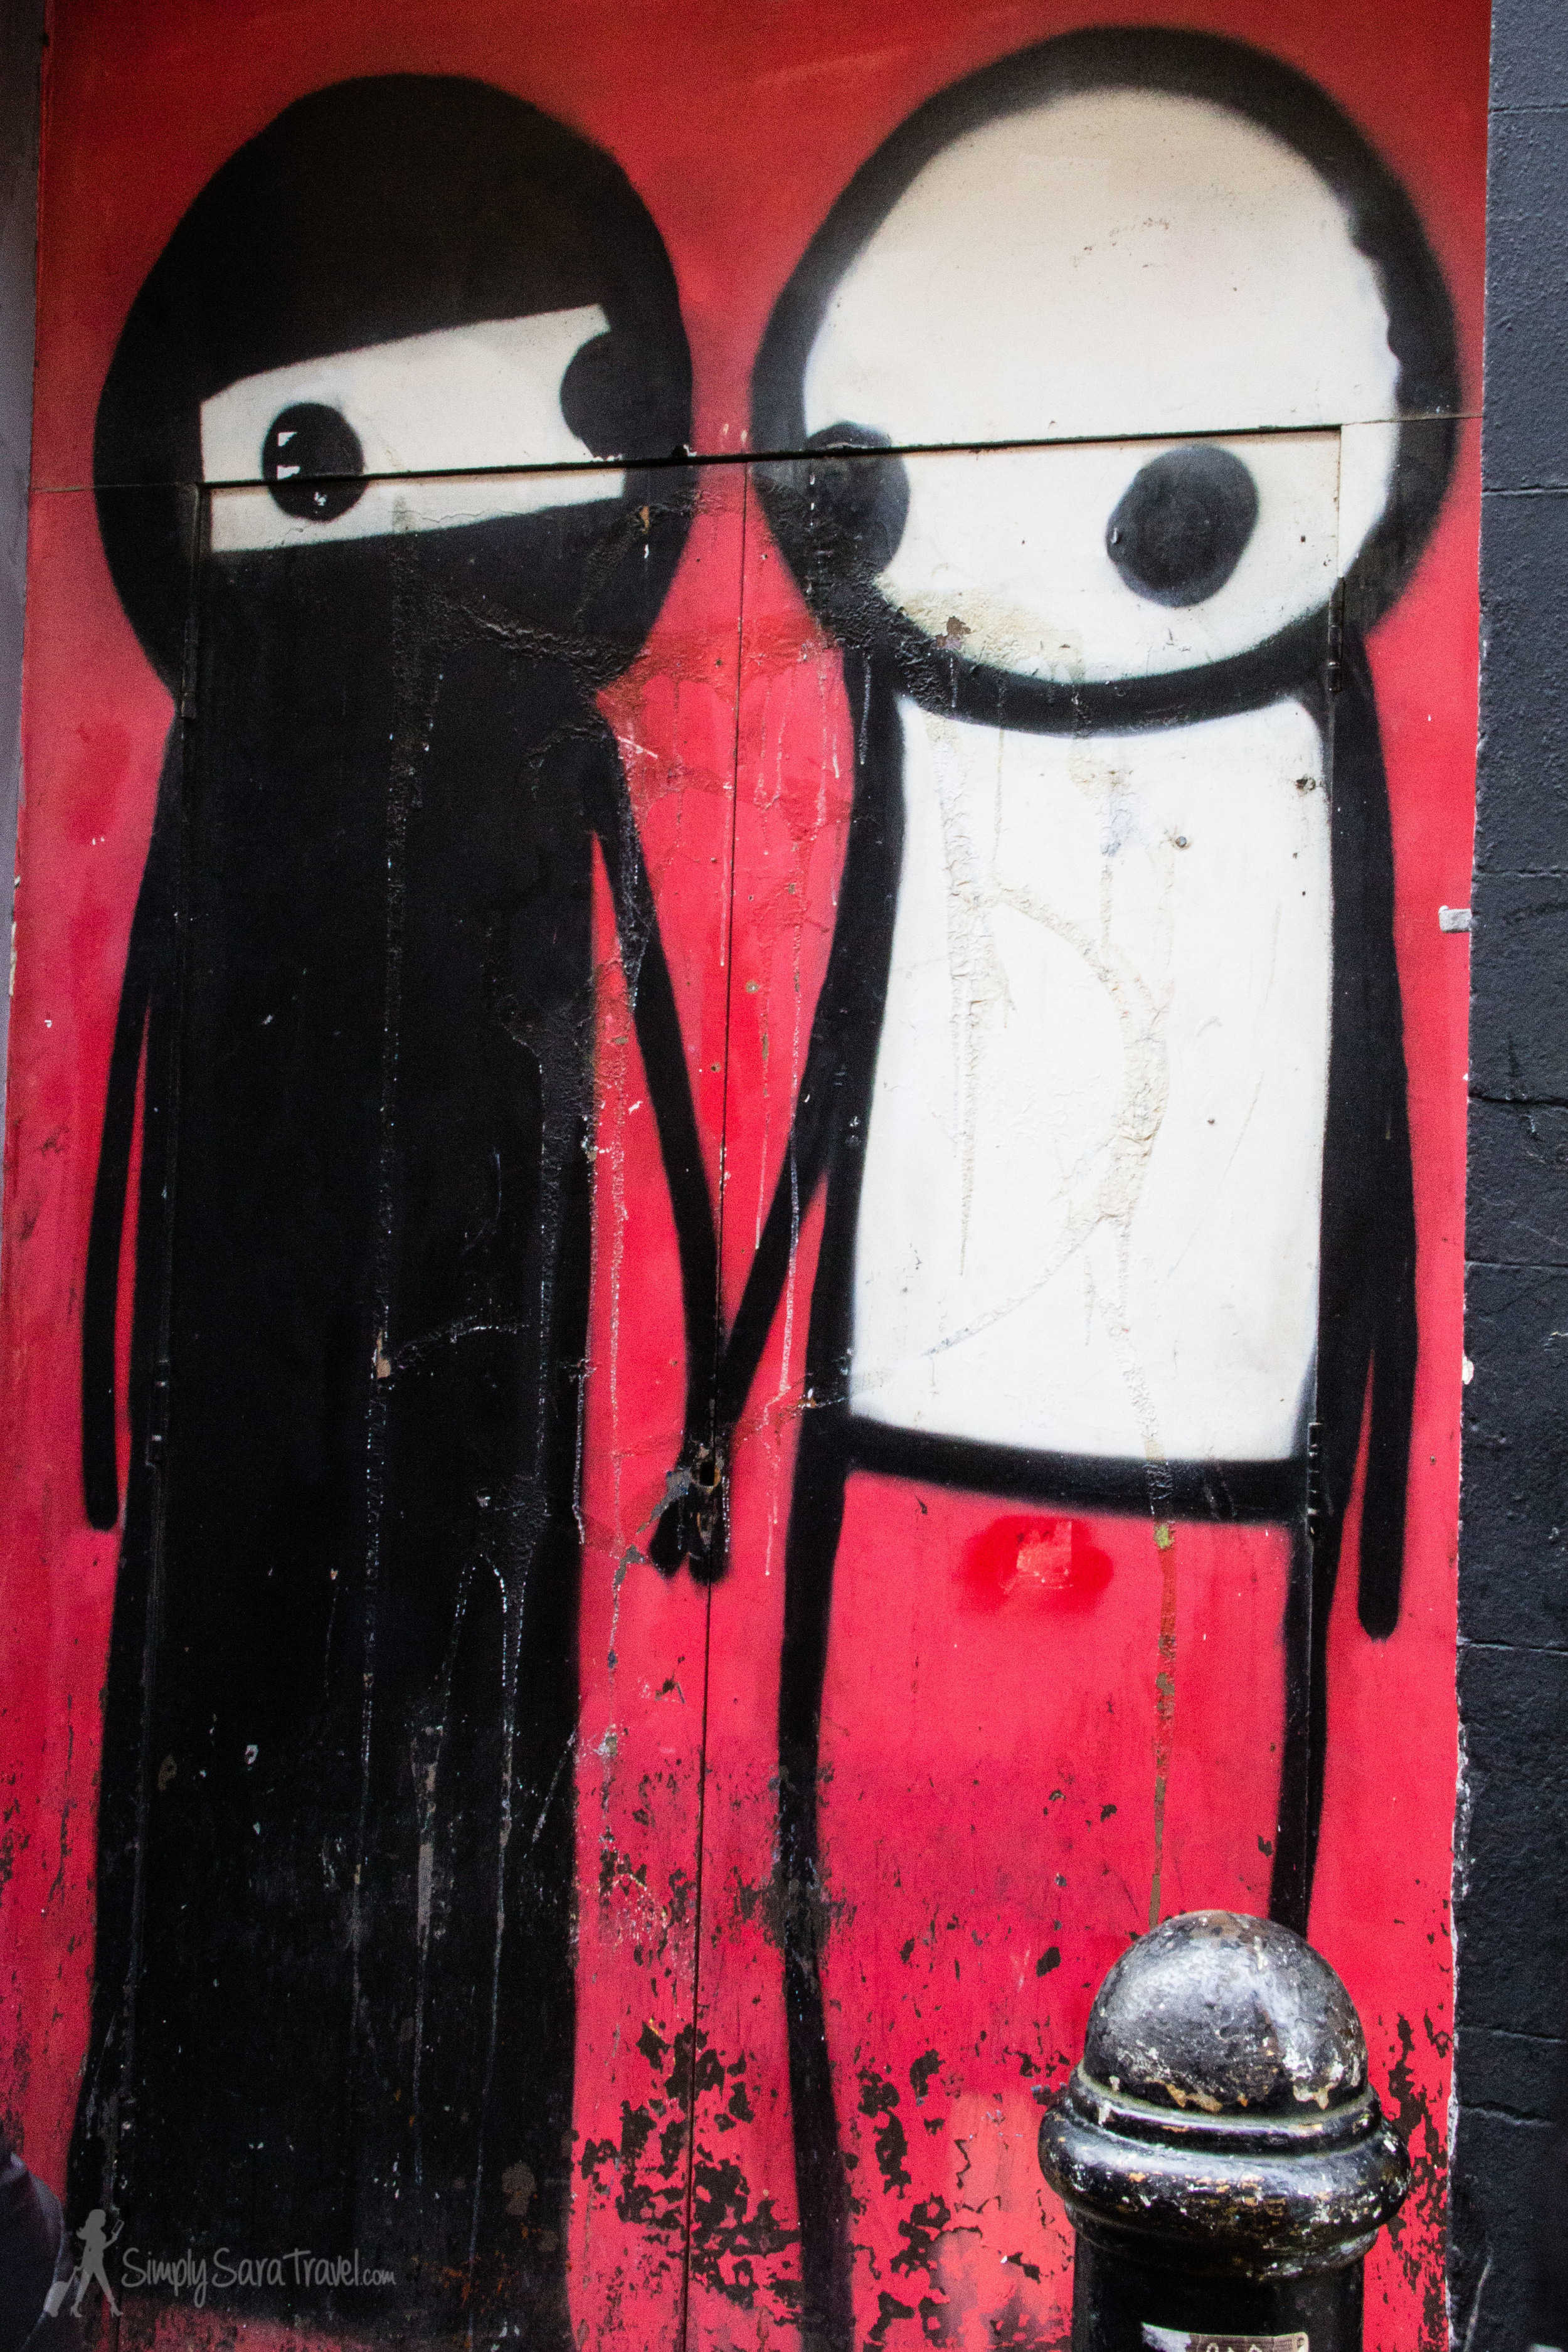 One of Stik's works in Shoreditch, London